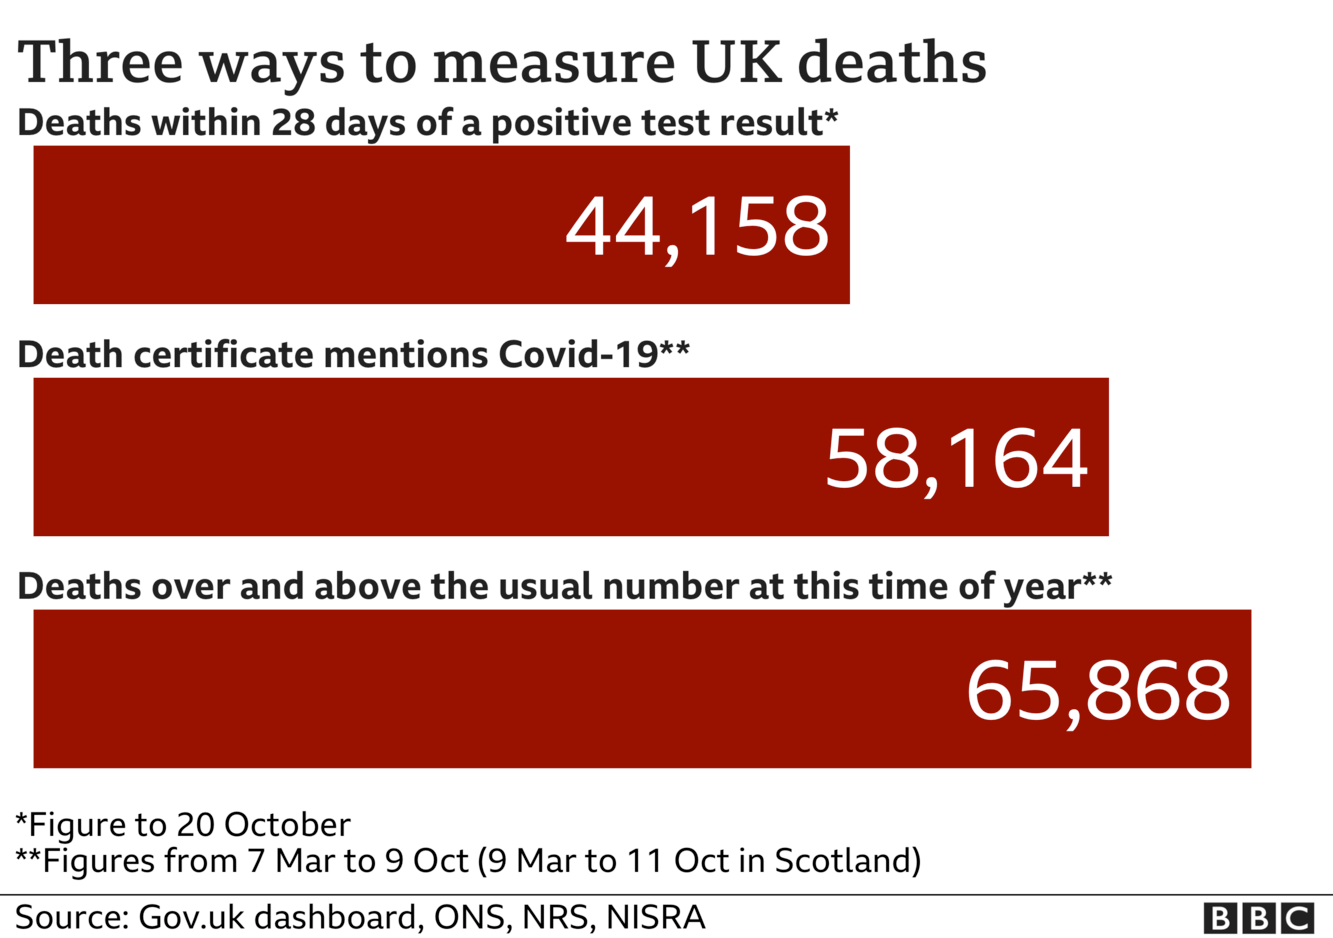 Chart shows three different ways to measures UK deaths - total is 44,158 according to government stats, ONS total of 58,164 includes everyone where coronavirus was mentioned on the death certificate and the excess deaths figures is 65,868